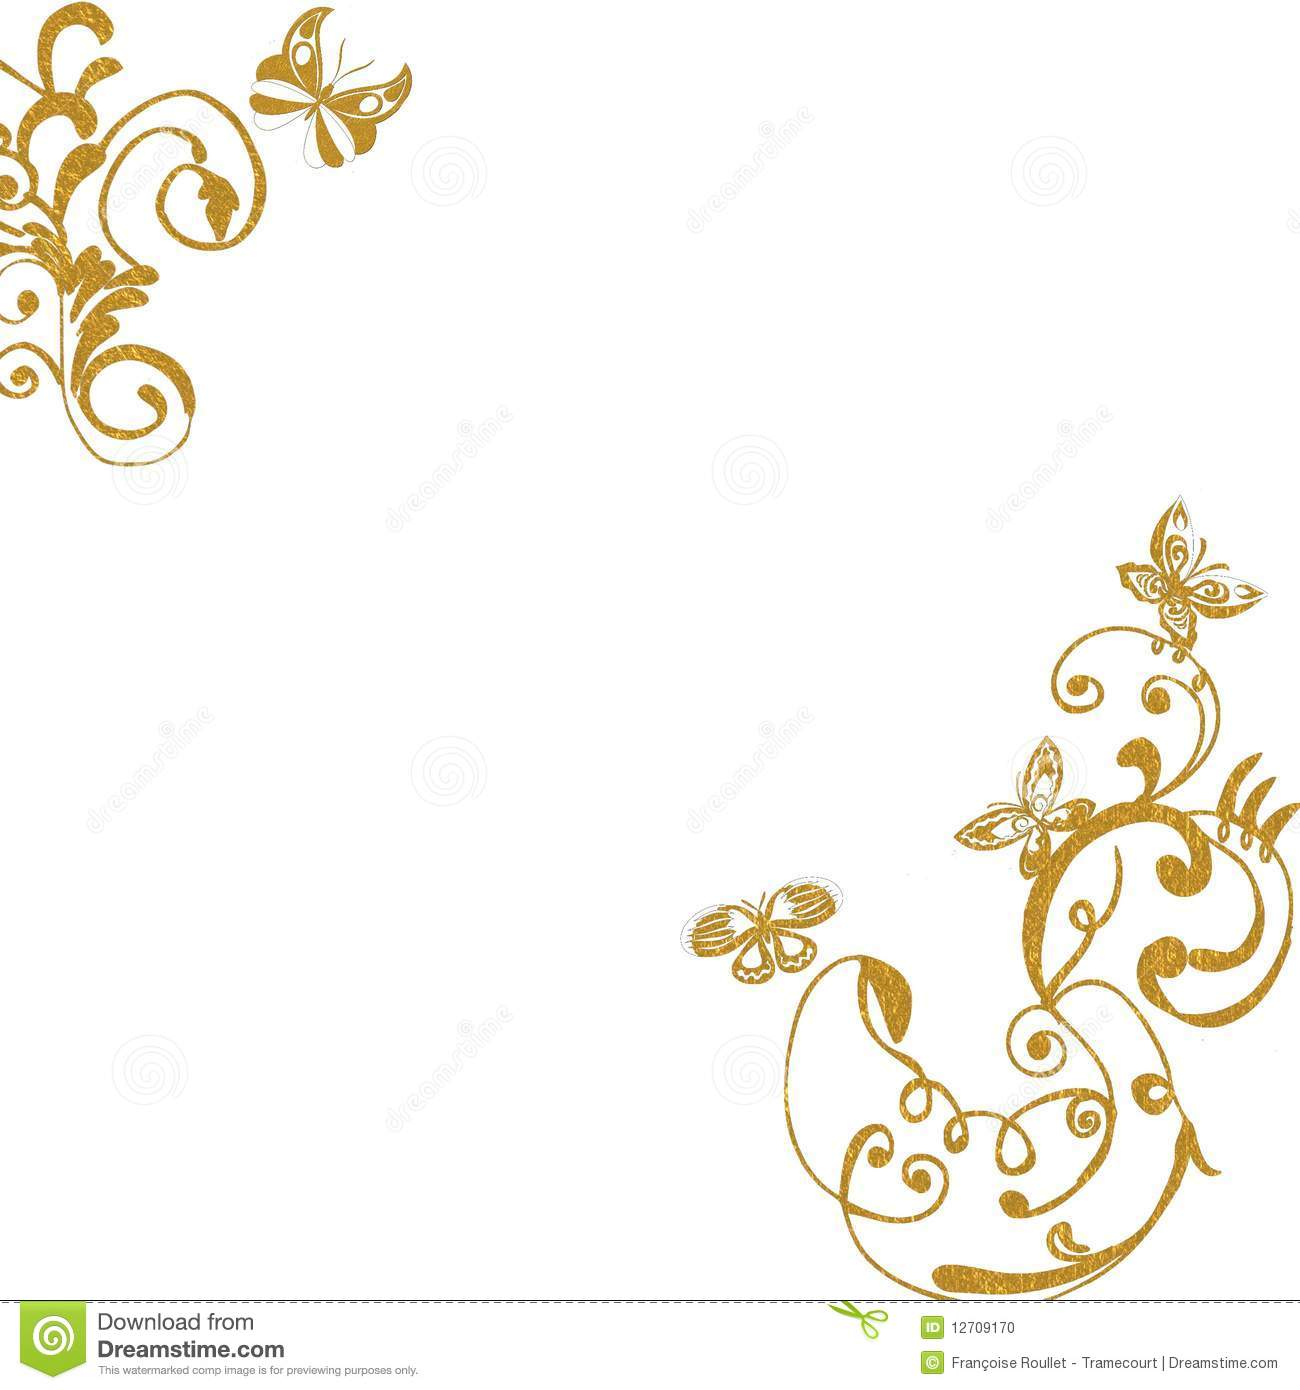 Gold Foliage Butterflies Background